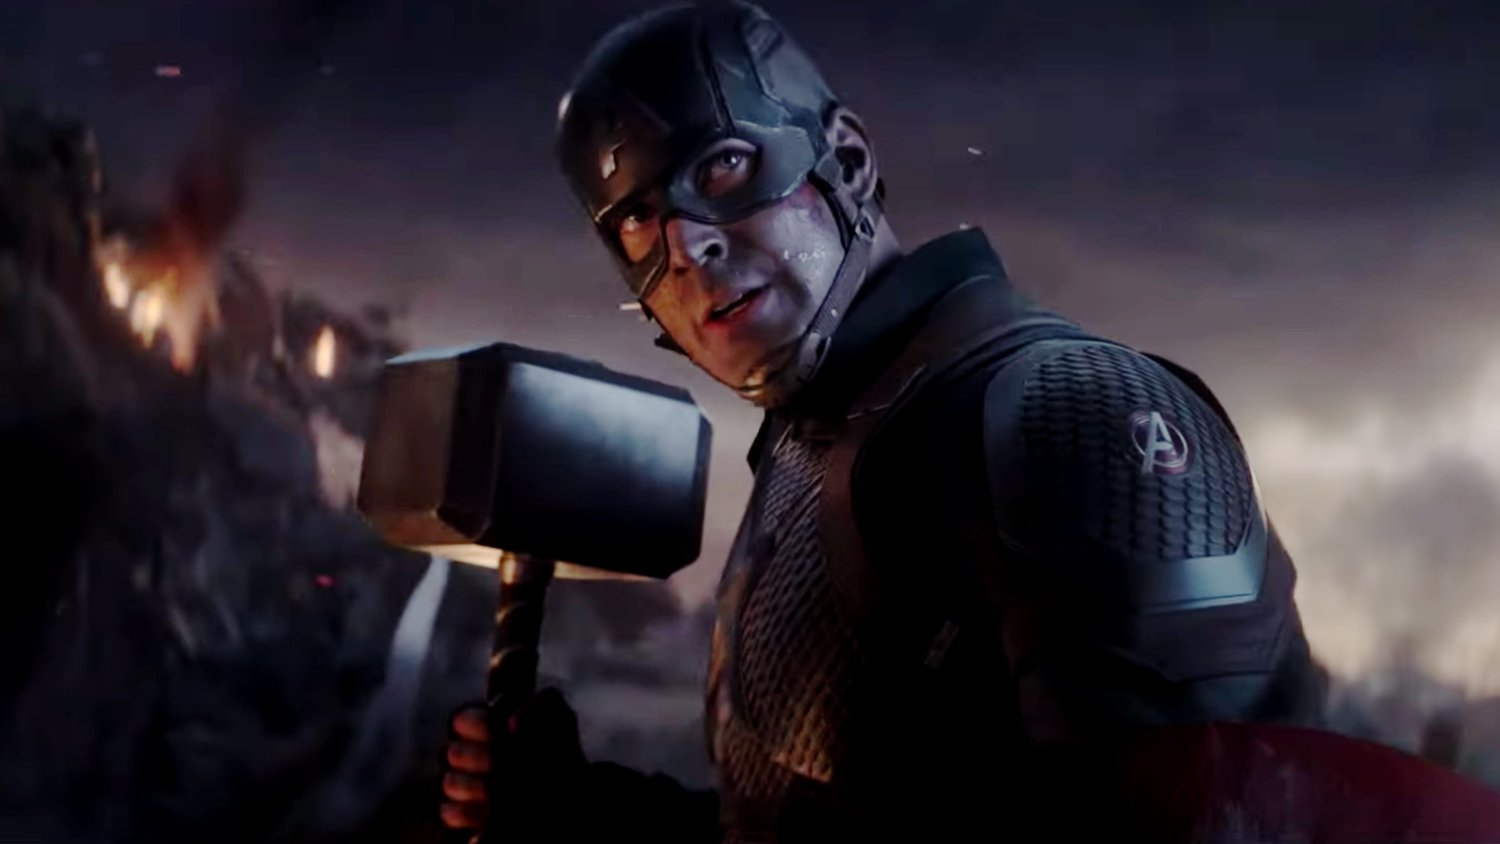 Watch Captain America Fight Thanos with Mjolnir Again in